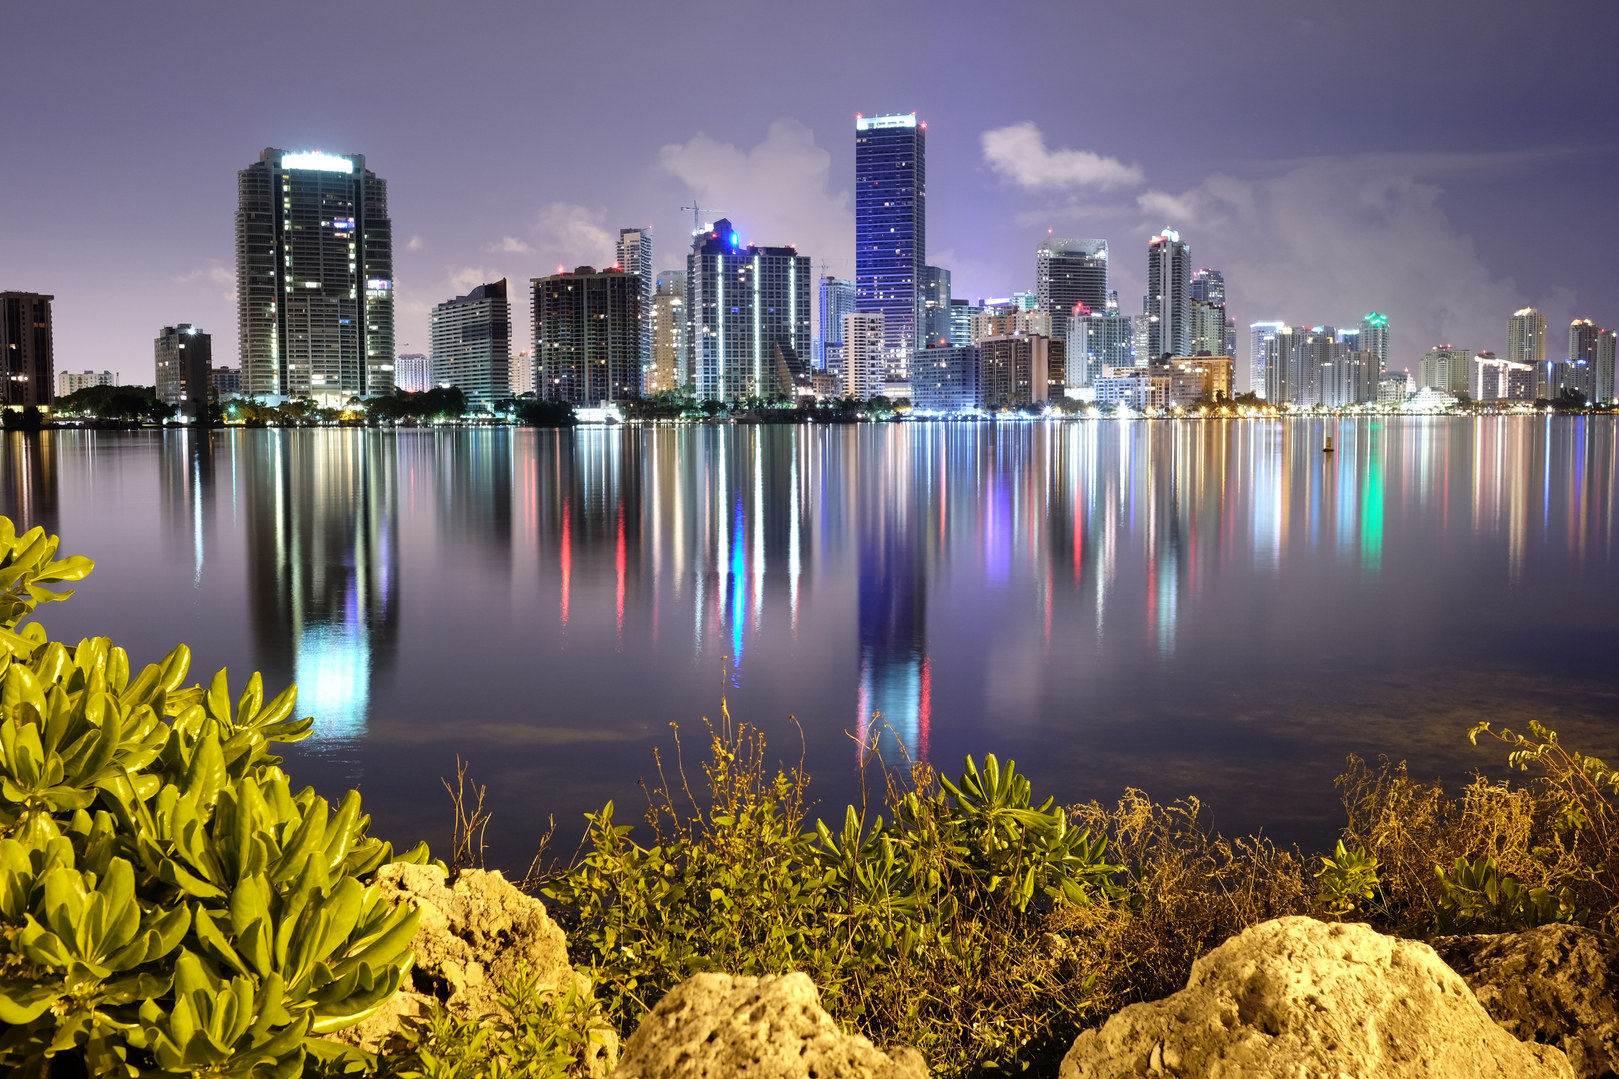 miami skyline reflected.jpg